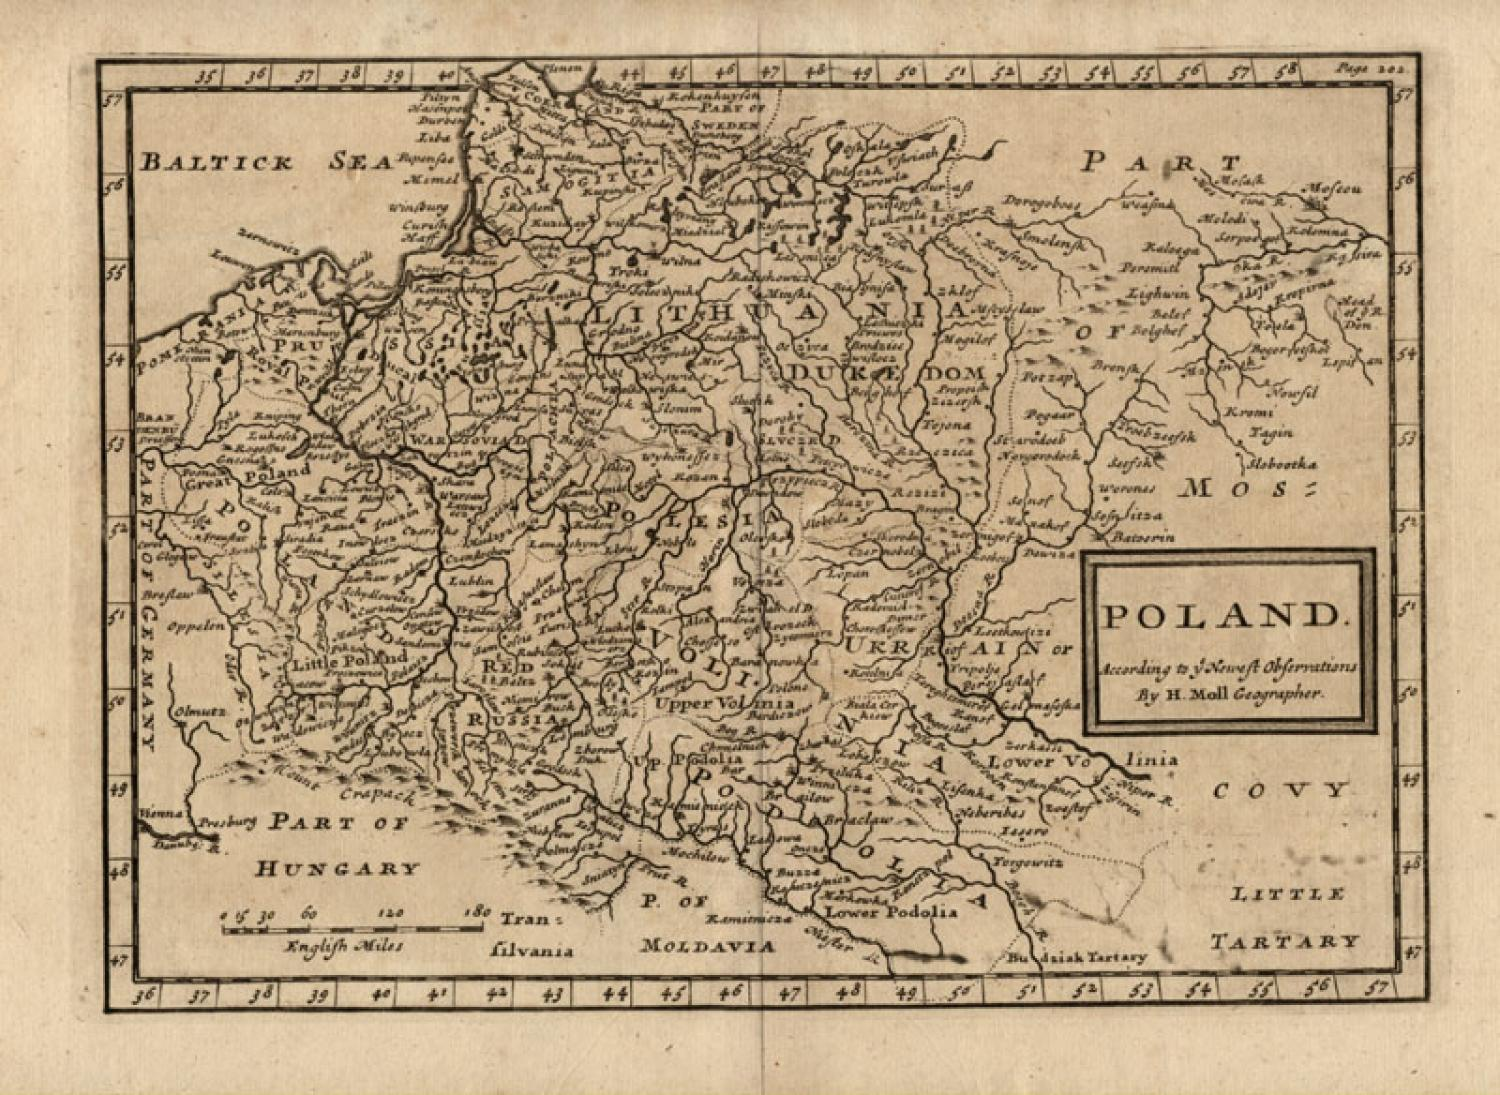 SOLD Poland according to the newest observations by Herman Moll Geographer.